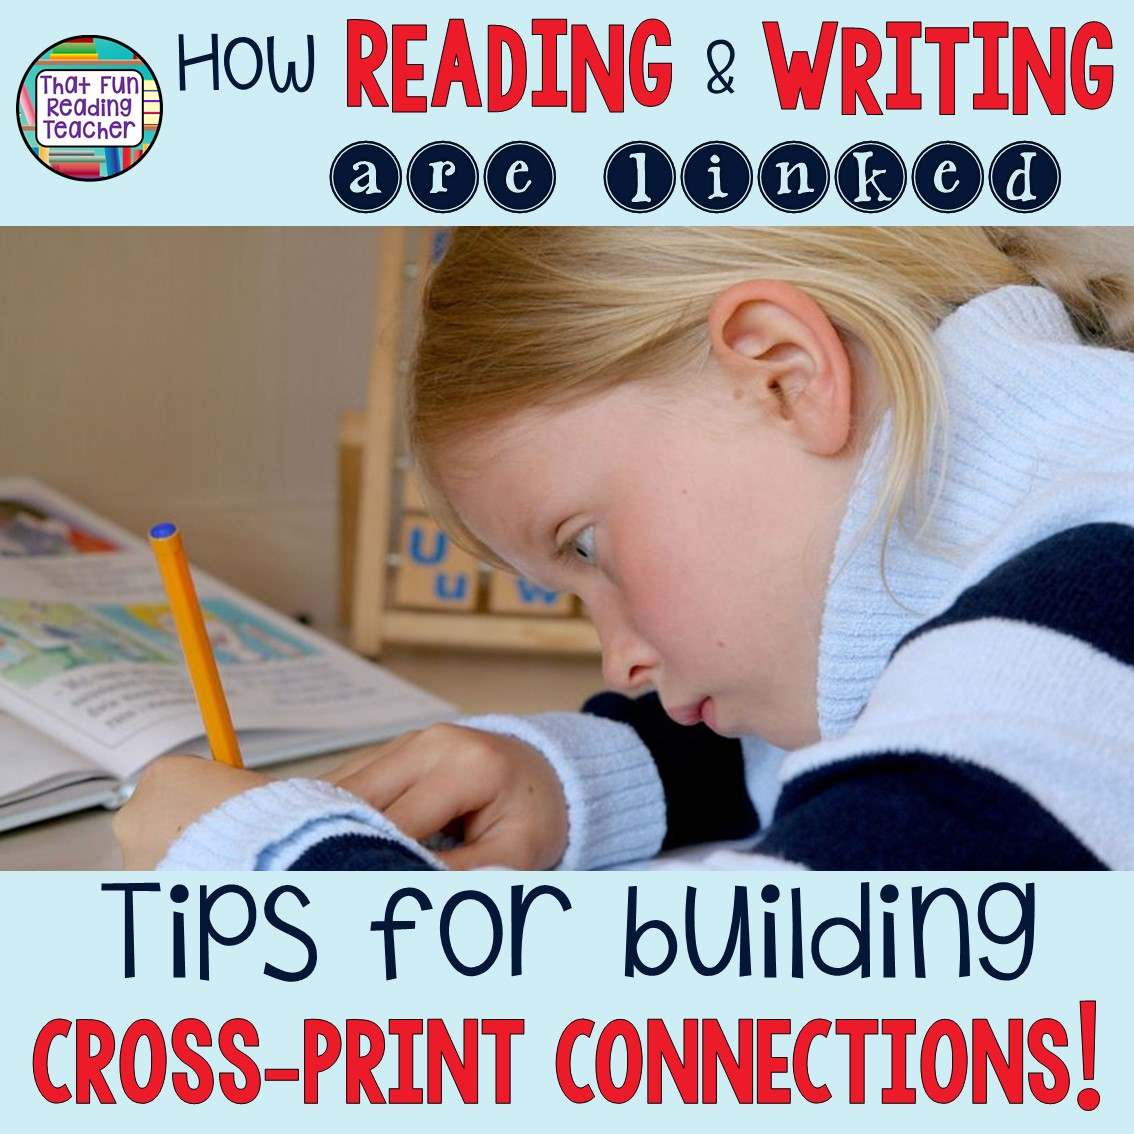 How reading and writing are linked - tips for building cross-print connections